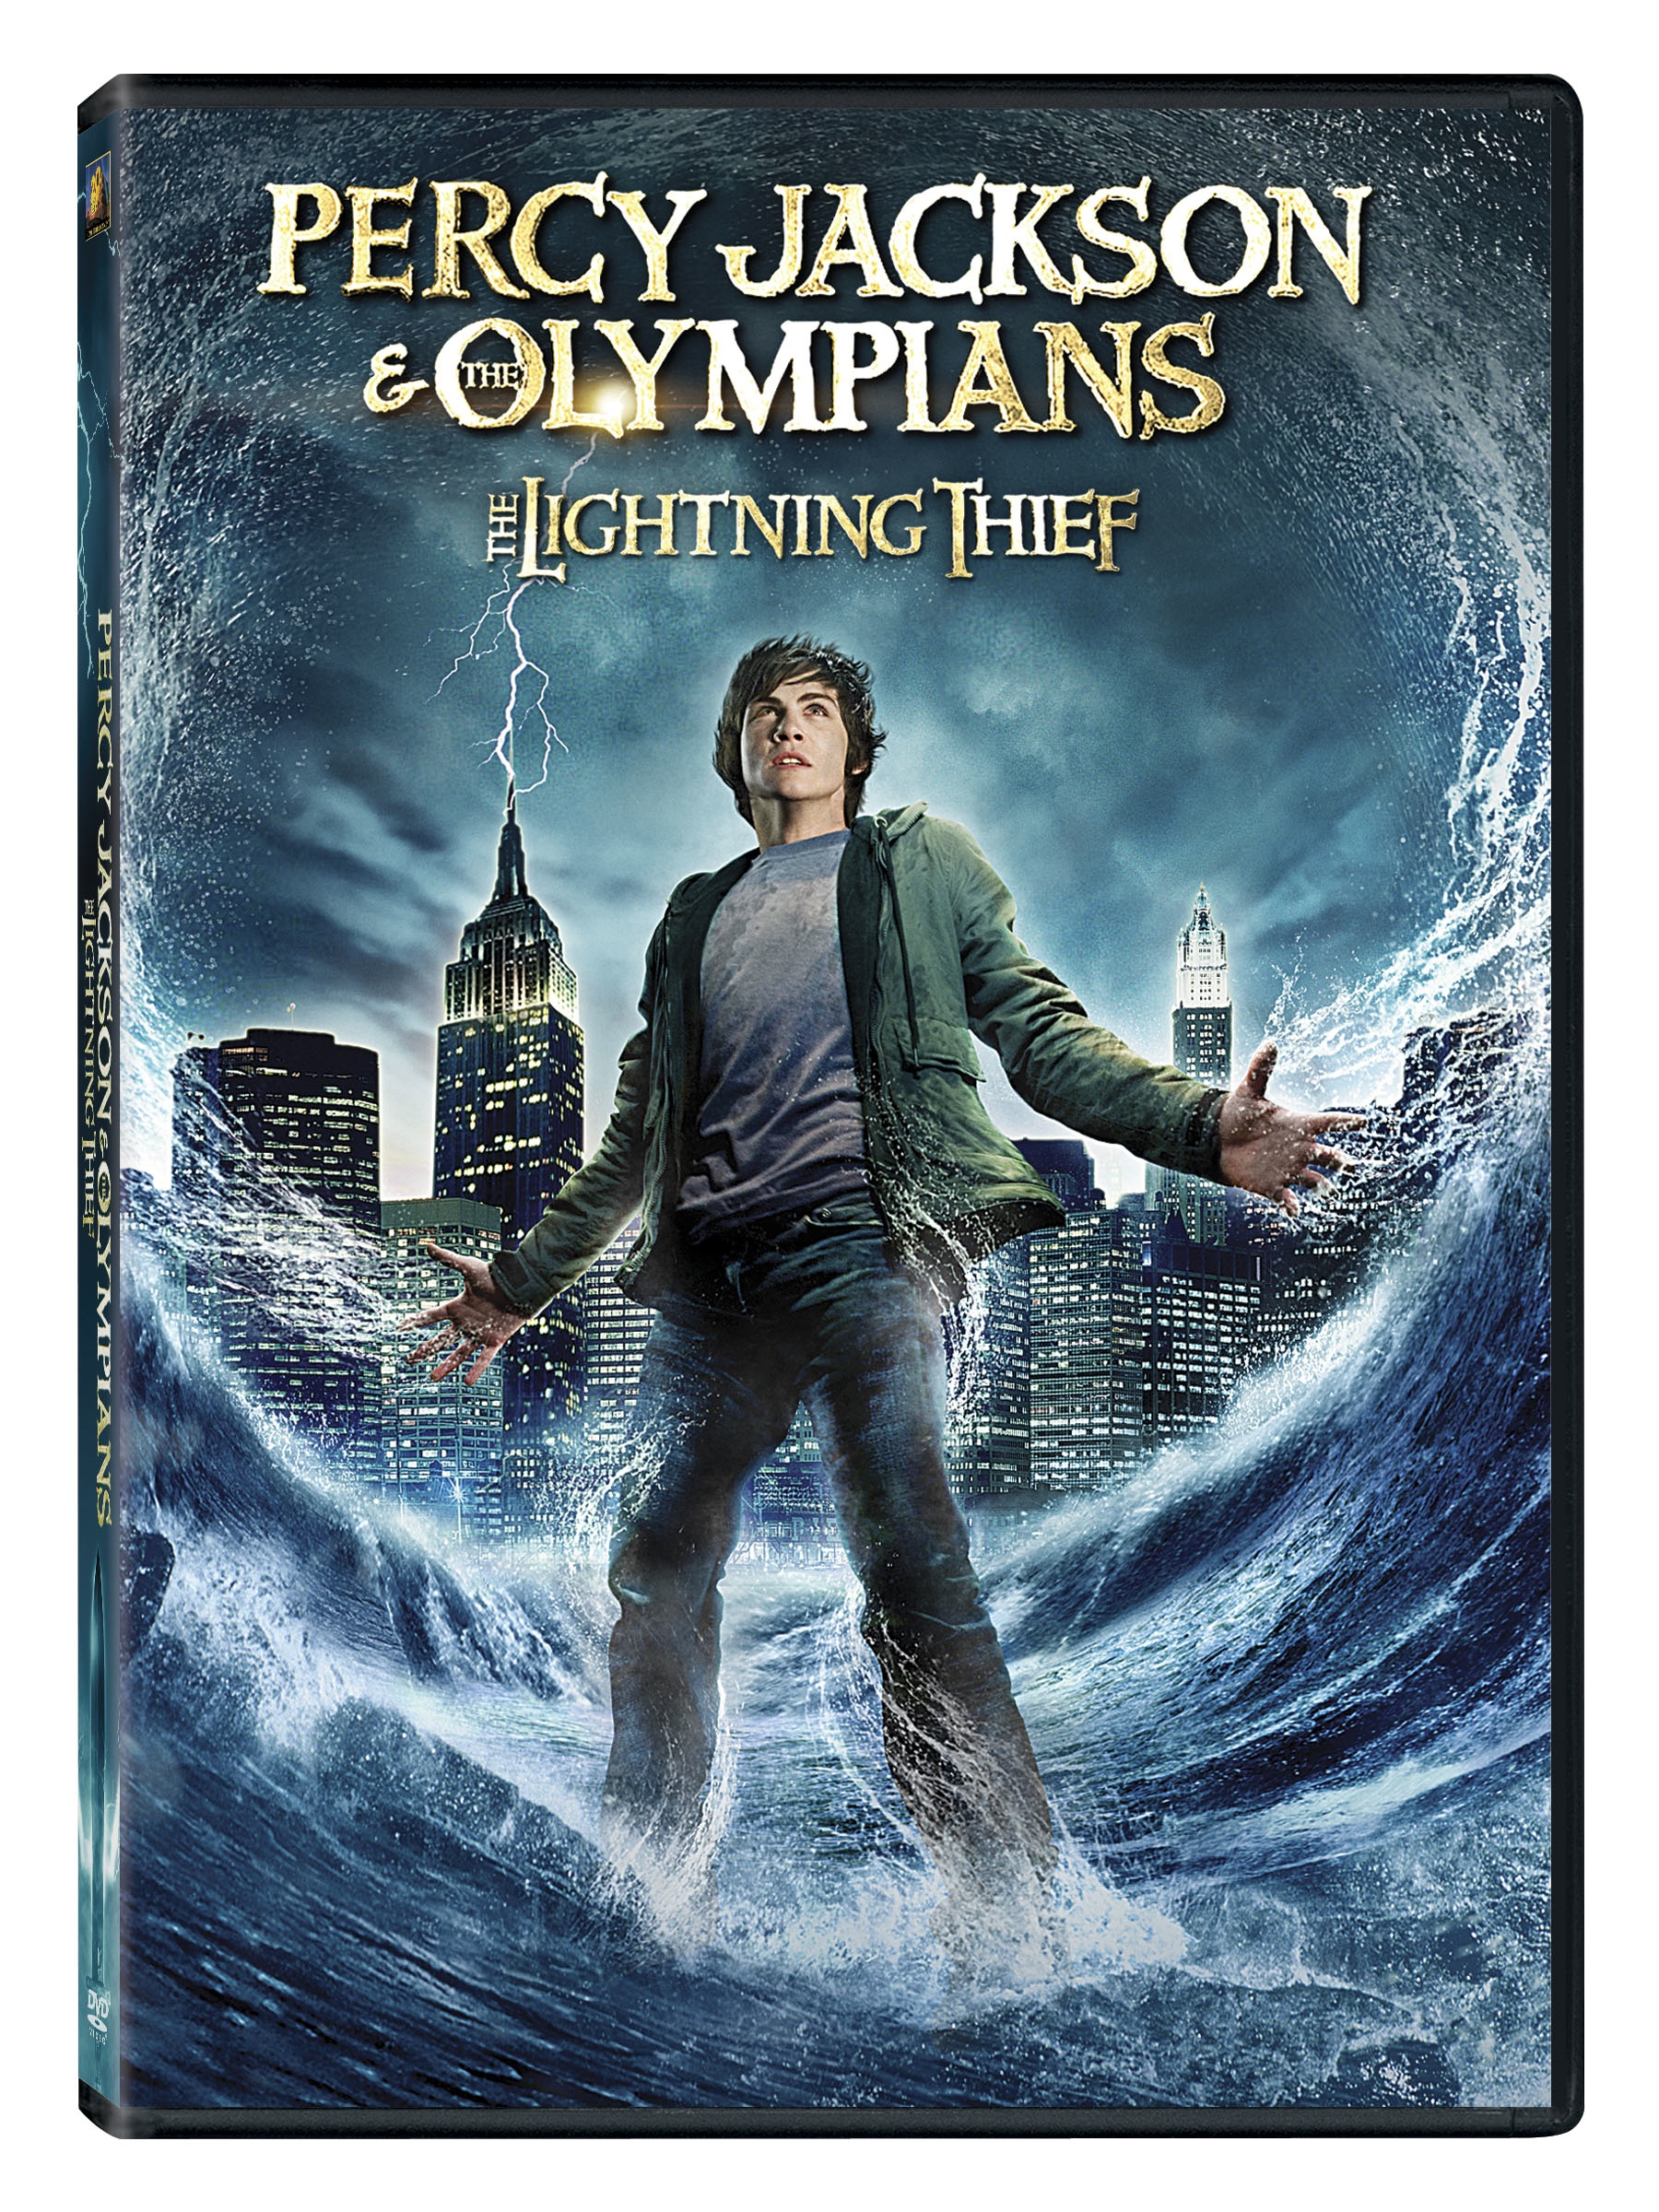 Percy Jackson The Olympians The Lightning Thief Fox 2000 Pictures Dvd C 2010 Wandering Through The Stacks